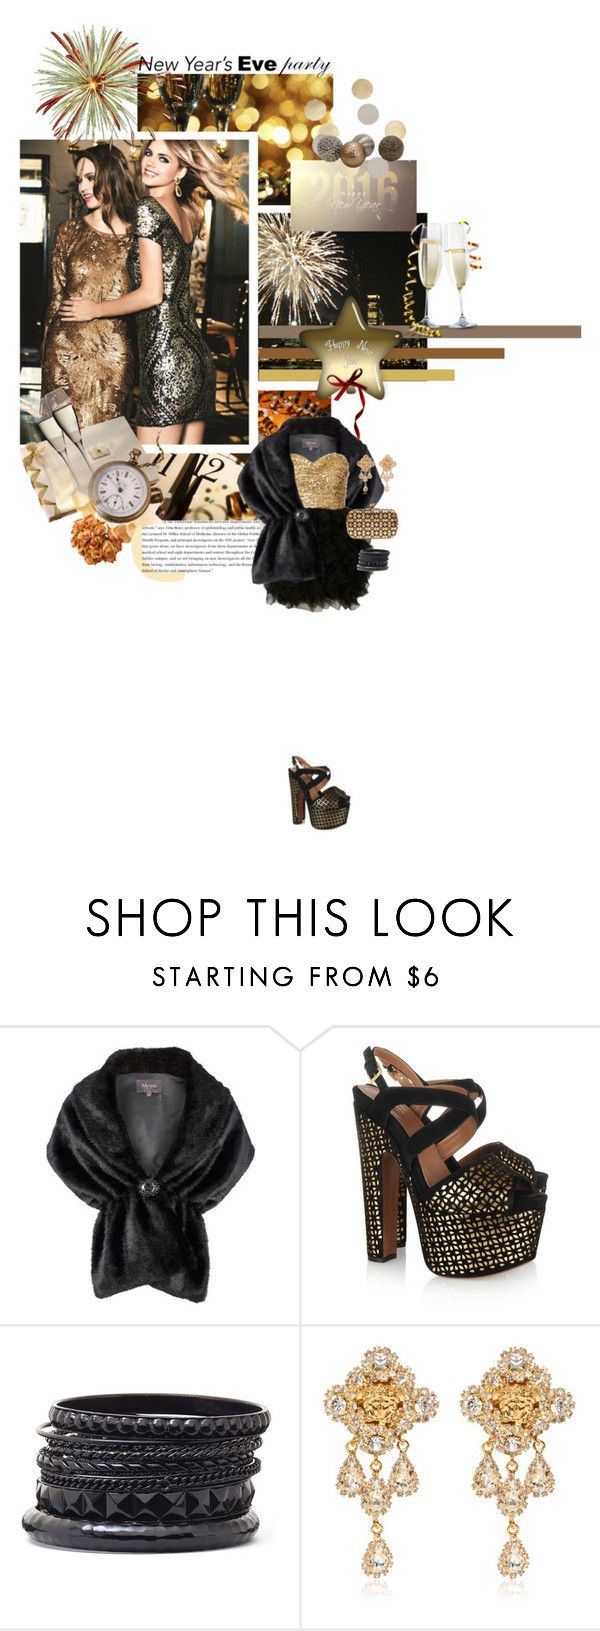 """party on, guys and dolls."" by sinesnsingularities ❤ liked on Polyvore featuring Alexon, Alaïa, Worthington, Versace, Urban Expressions, polyvorecommunity, contestentry and nyestyle"